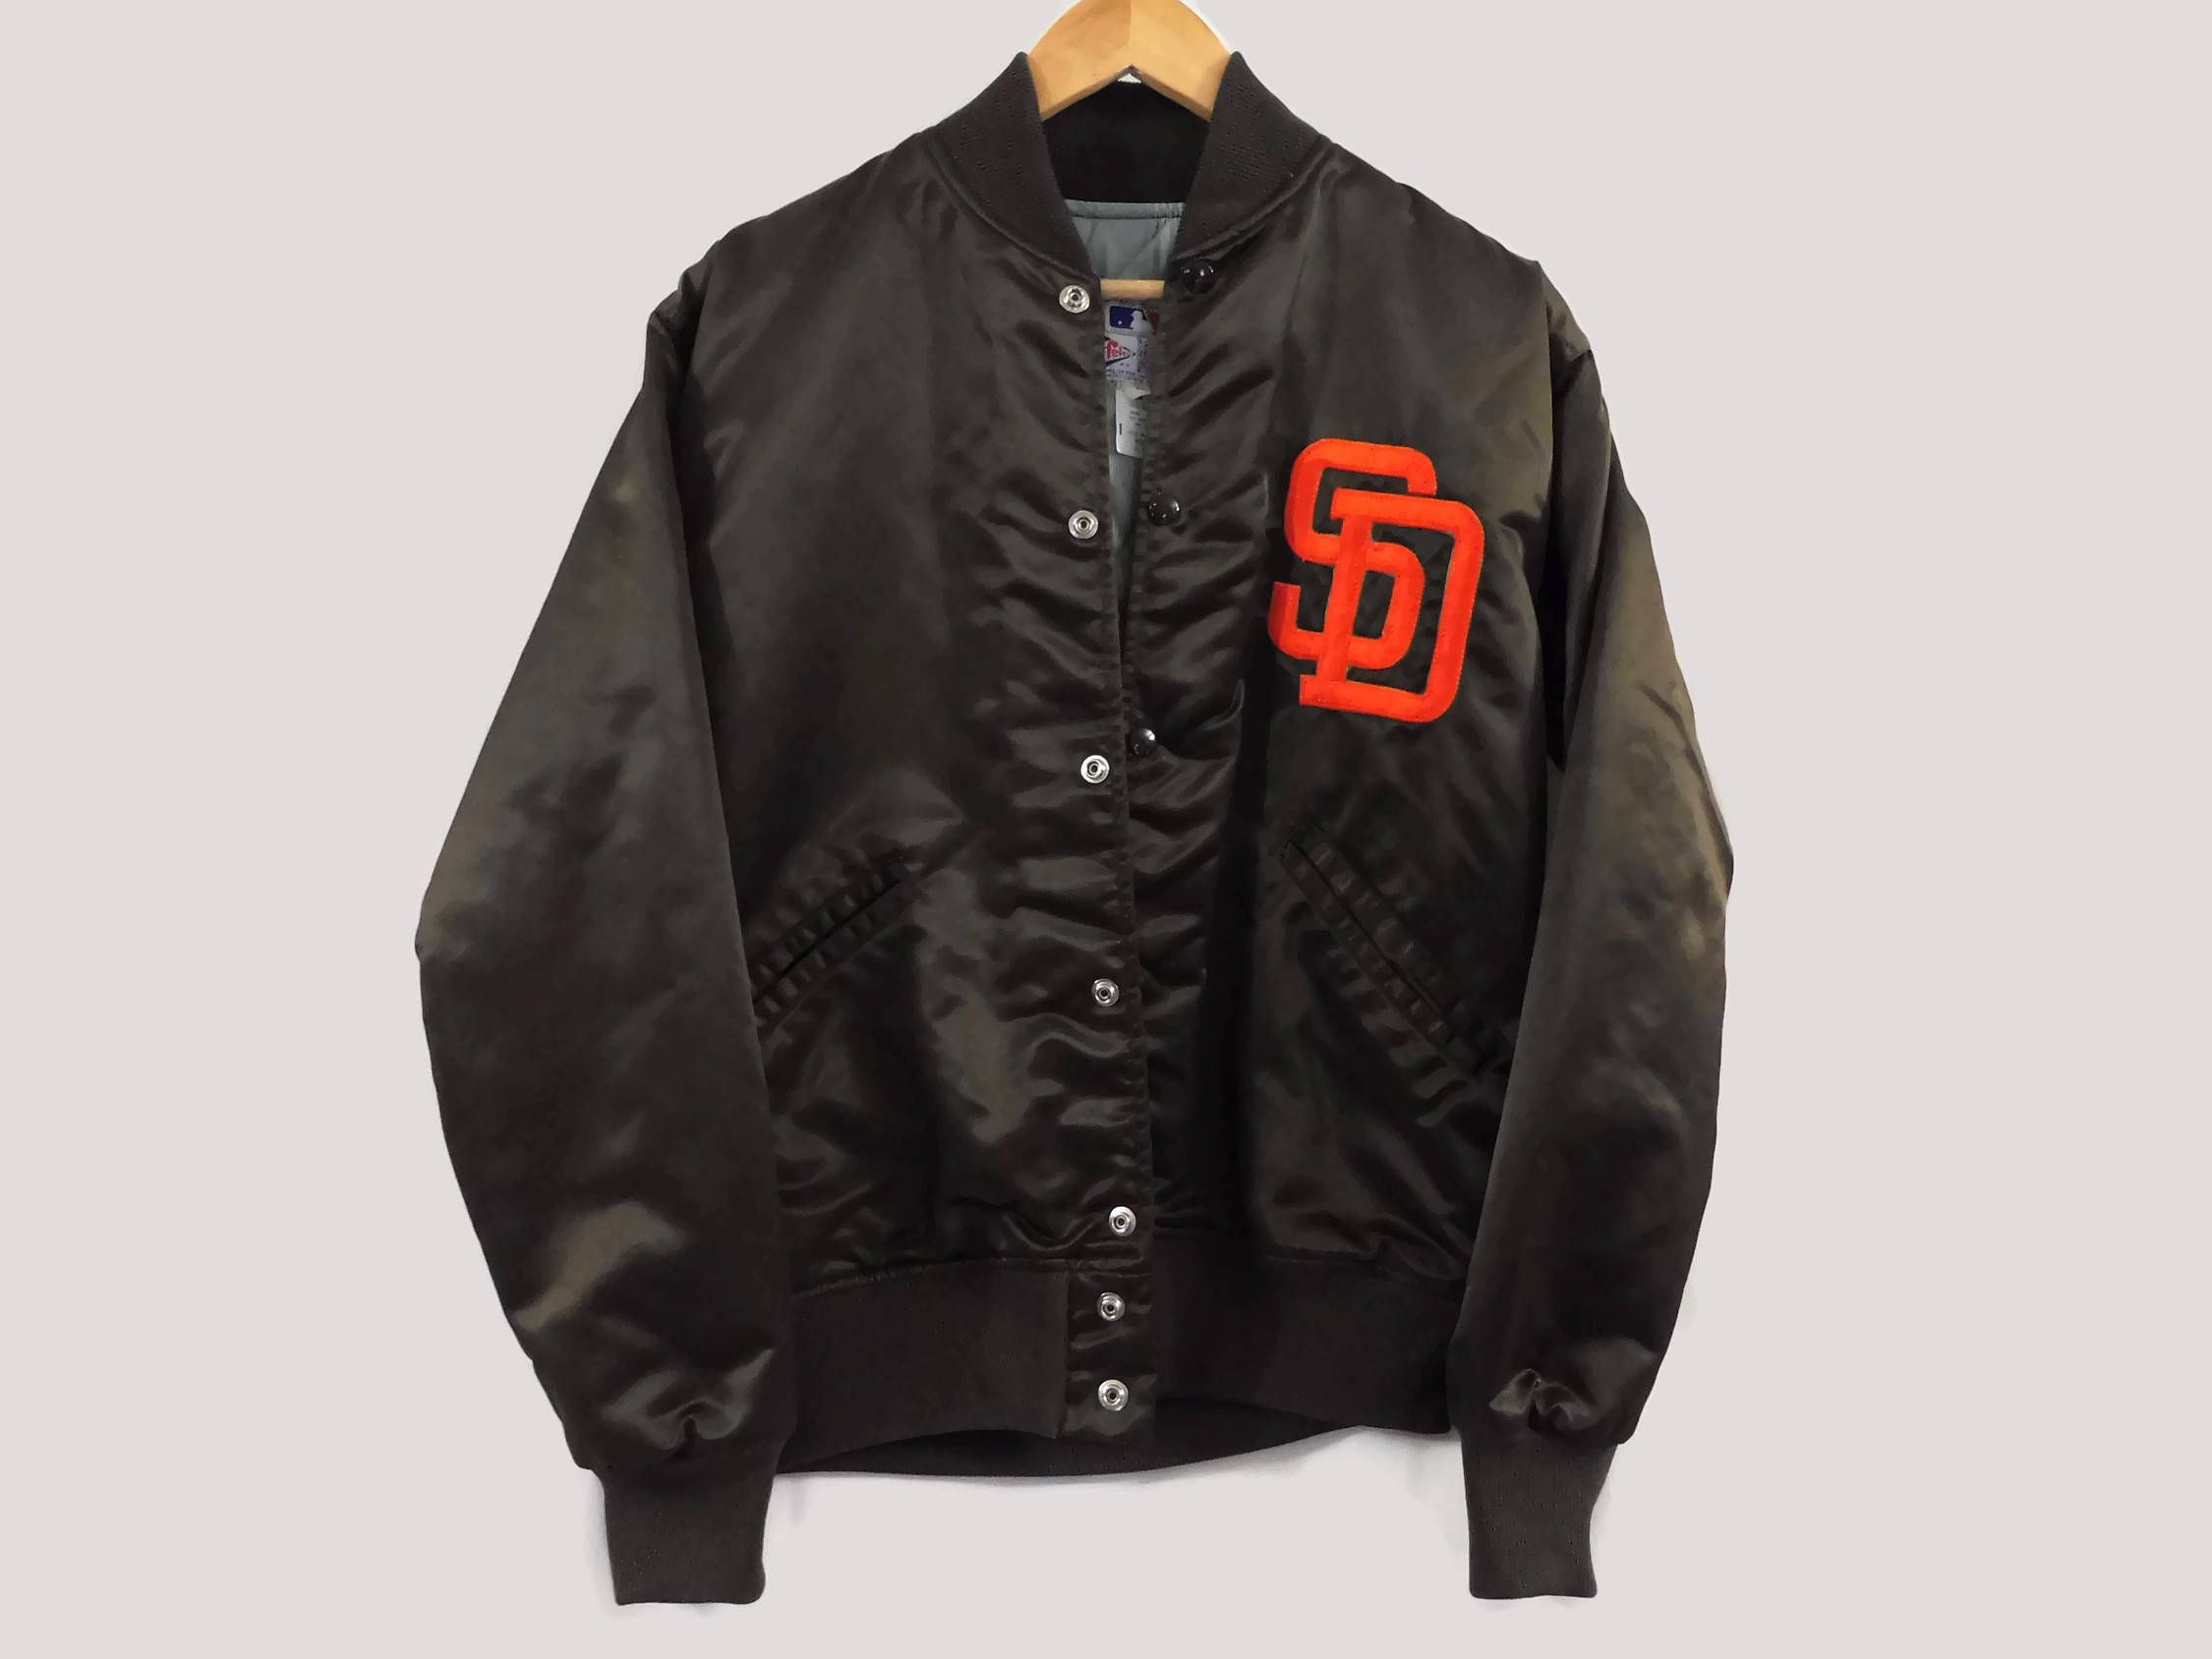 Vintage 80s San Diego Padres Bomber Jacket - Small - Dark Brown - Union  Made in 9e0217245